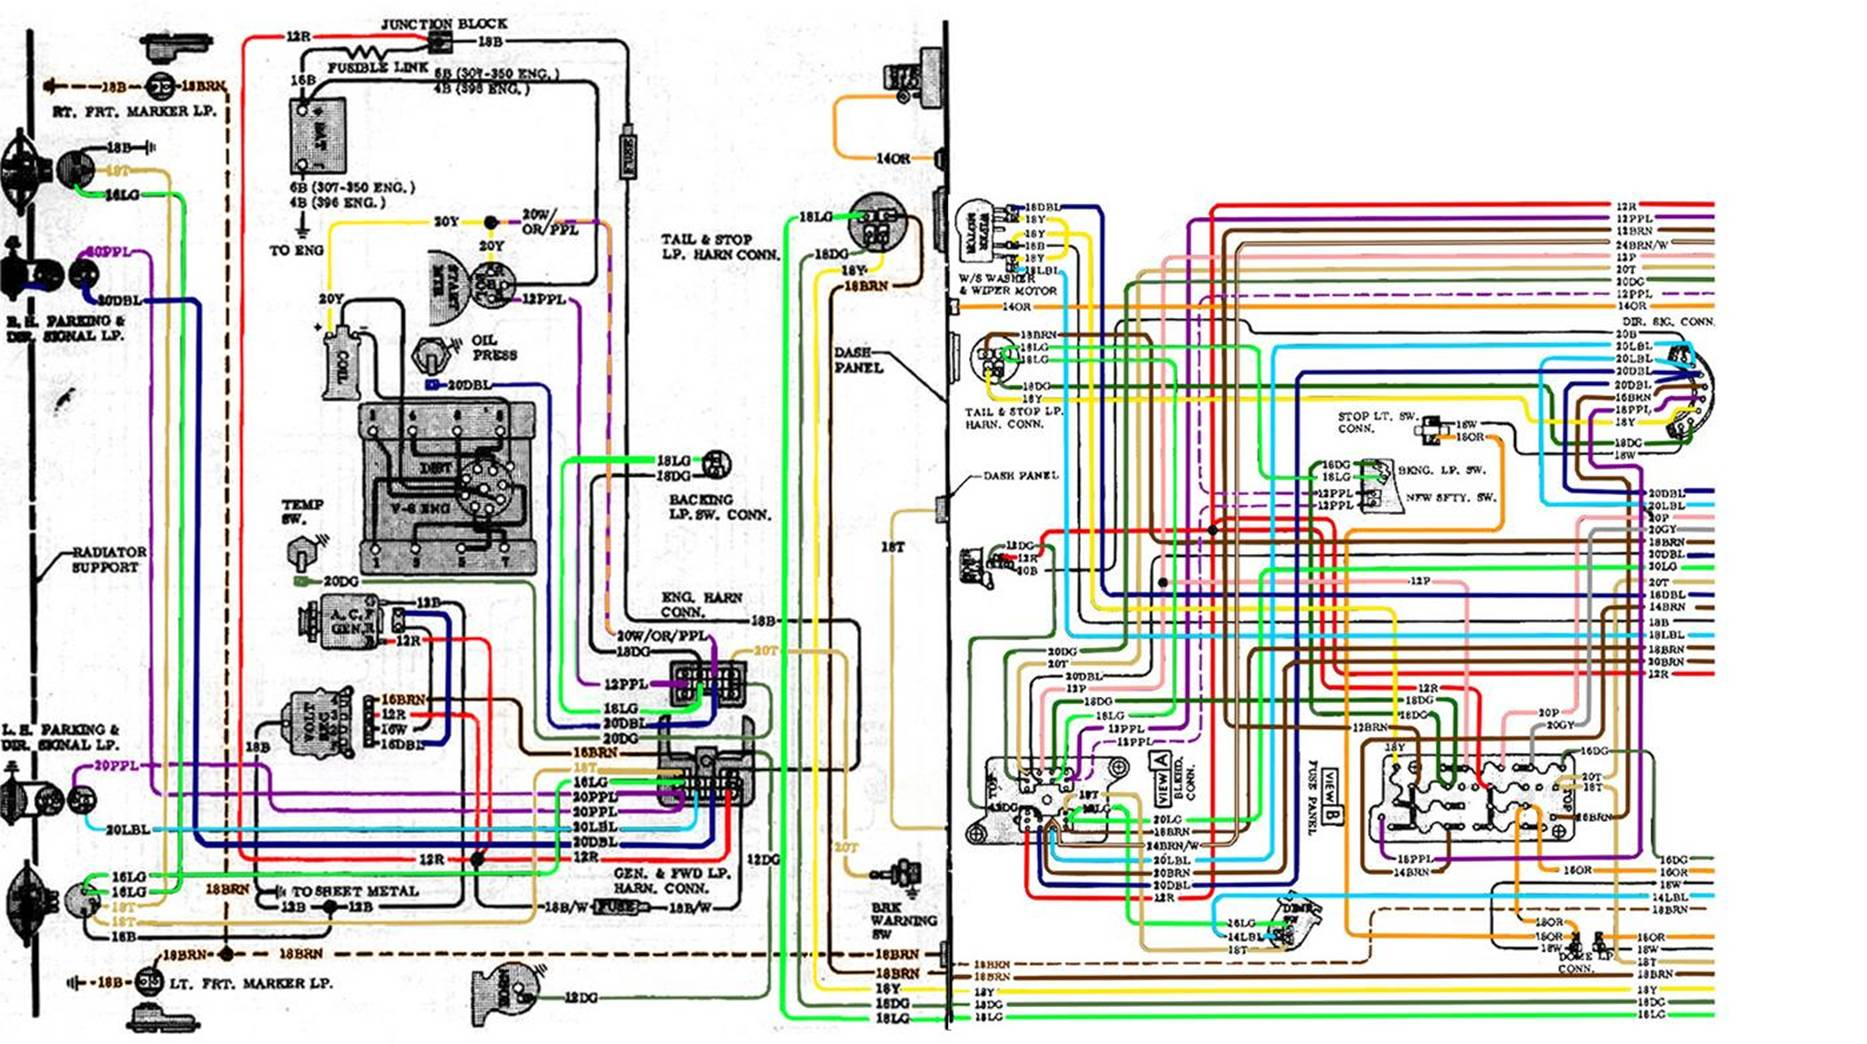 1968 Chevy Bel Air Wiring Diagram Just Another Blog 1966 Caprice Schematic Change Your Idea With Rh Voice Bridgesgi Com 1965